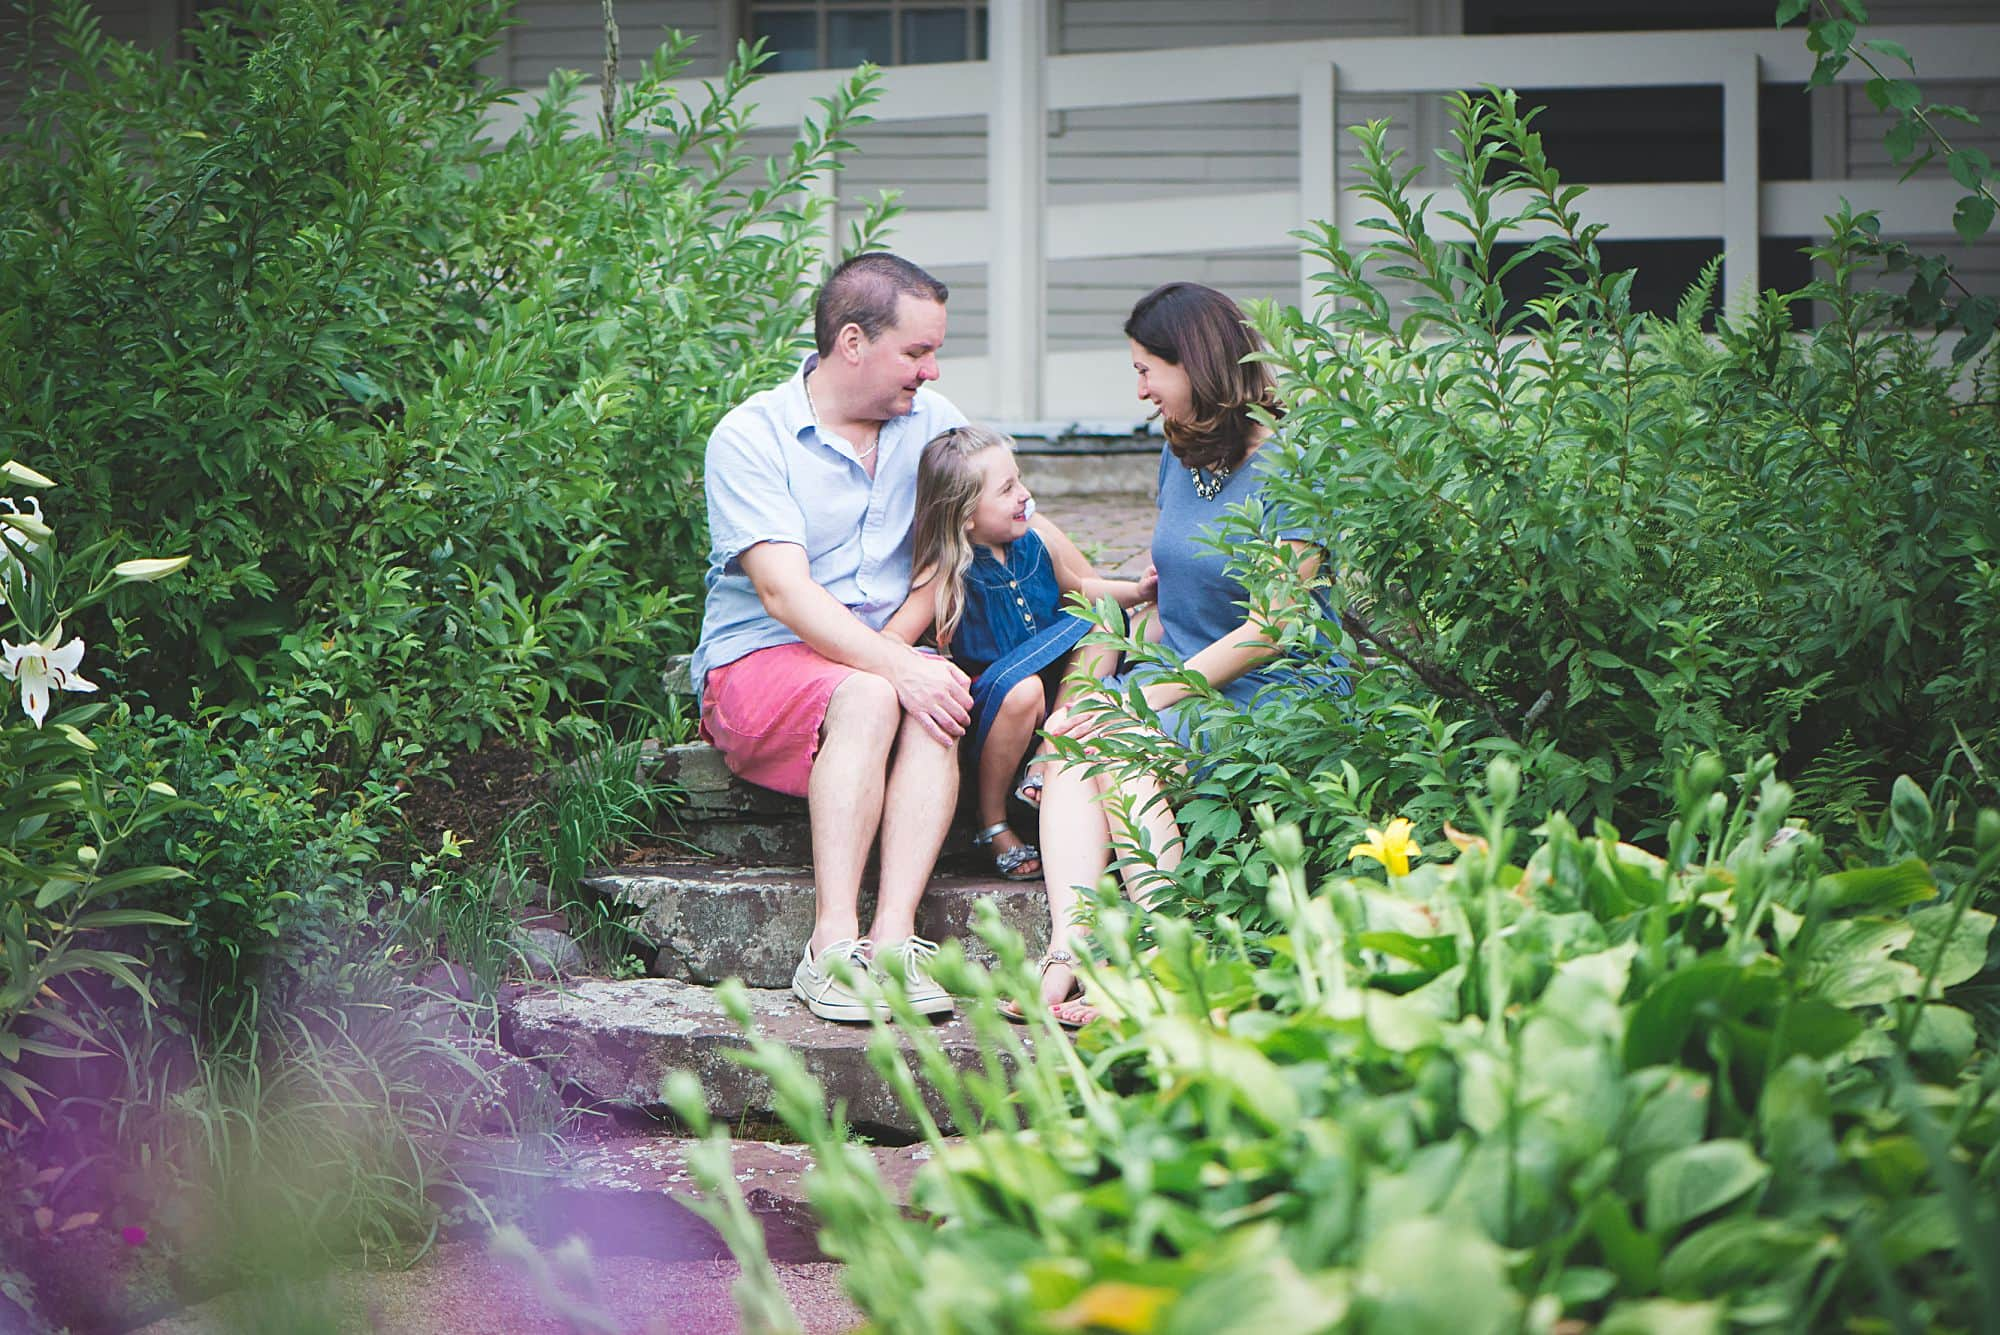 Family talking together on stone steps in a lush green garden